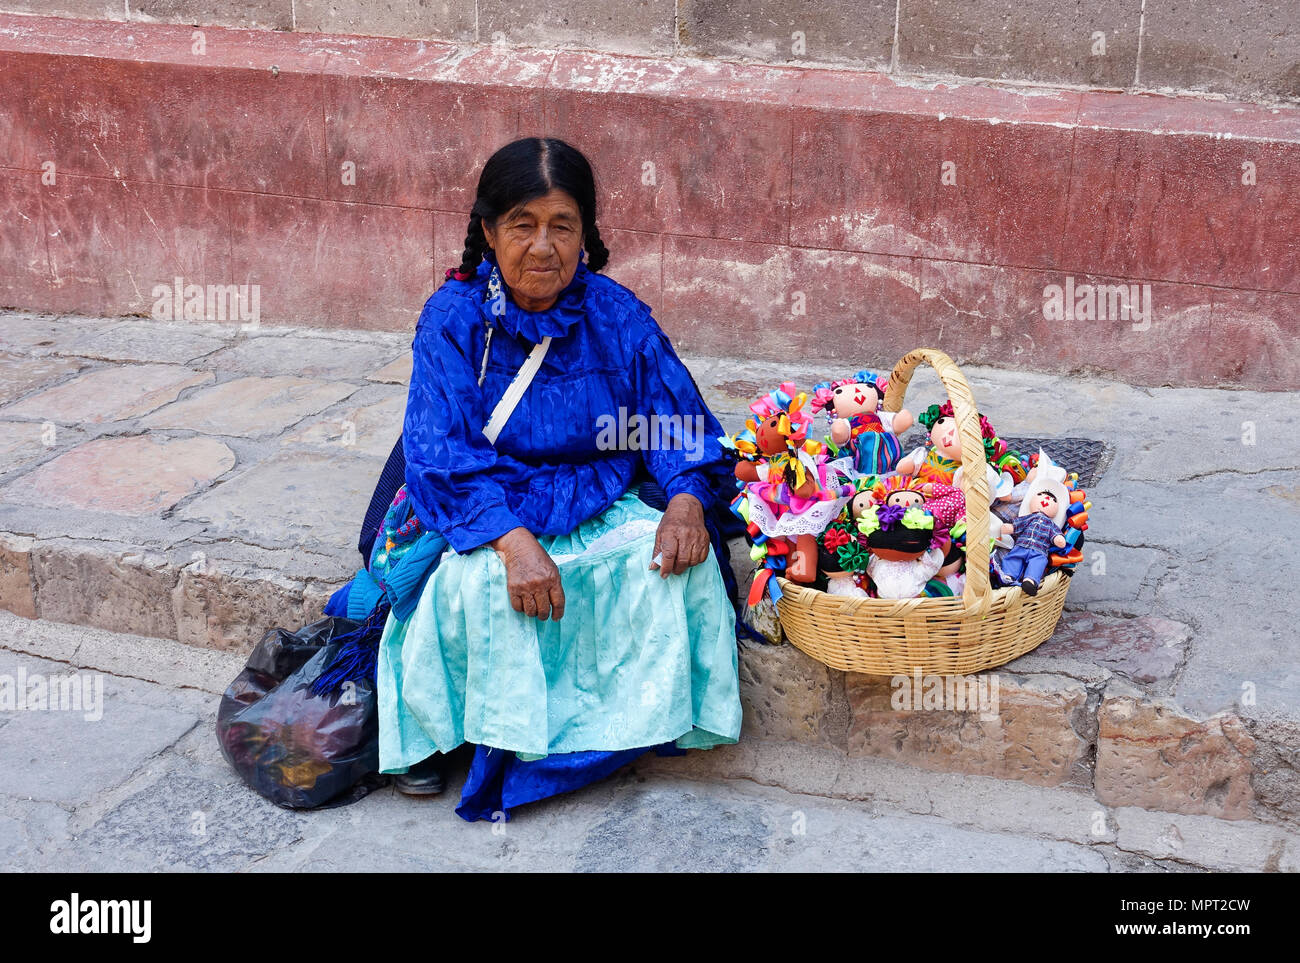 Otomi indian woman sells handmade folk art dolls in San Miguel de Allende, Mexico. Otomi are the oldest largest indigenous group inhabiting the region. - Stock Image